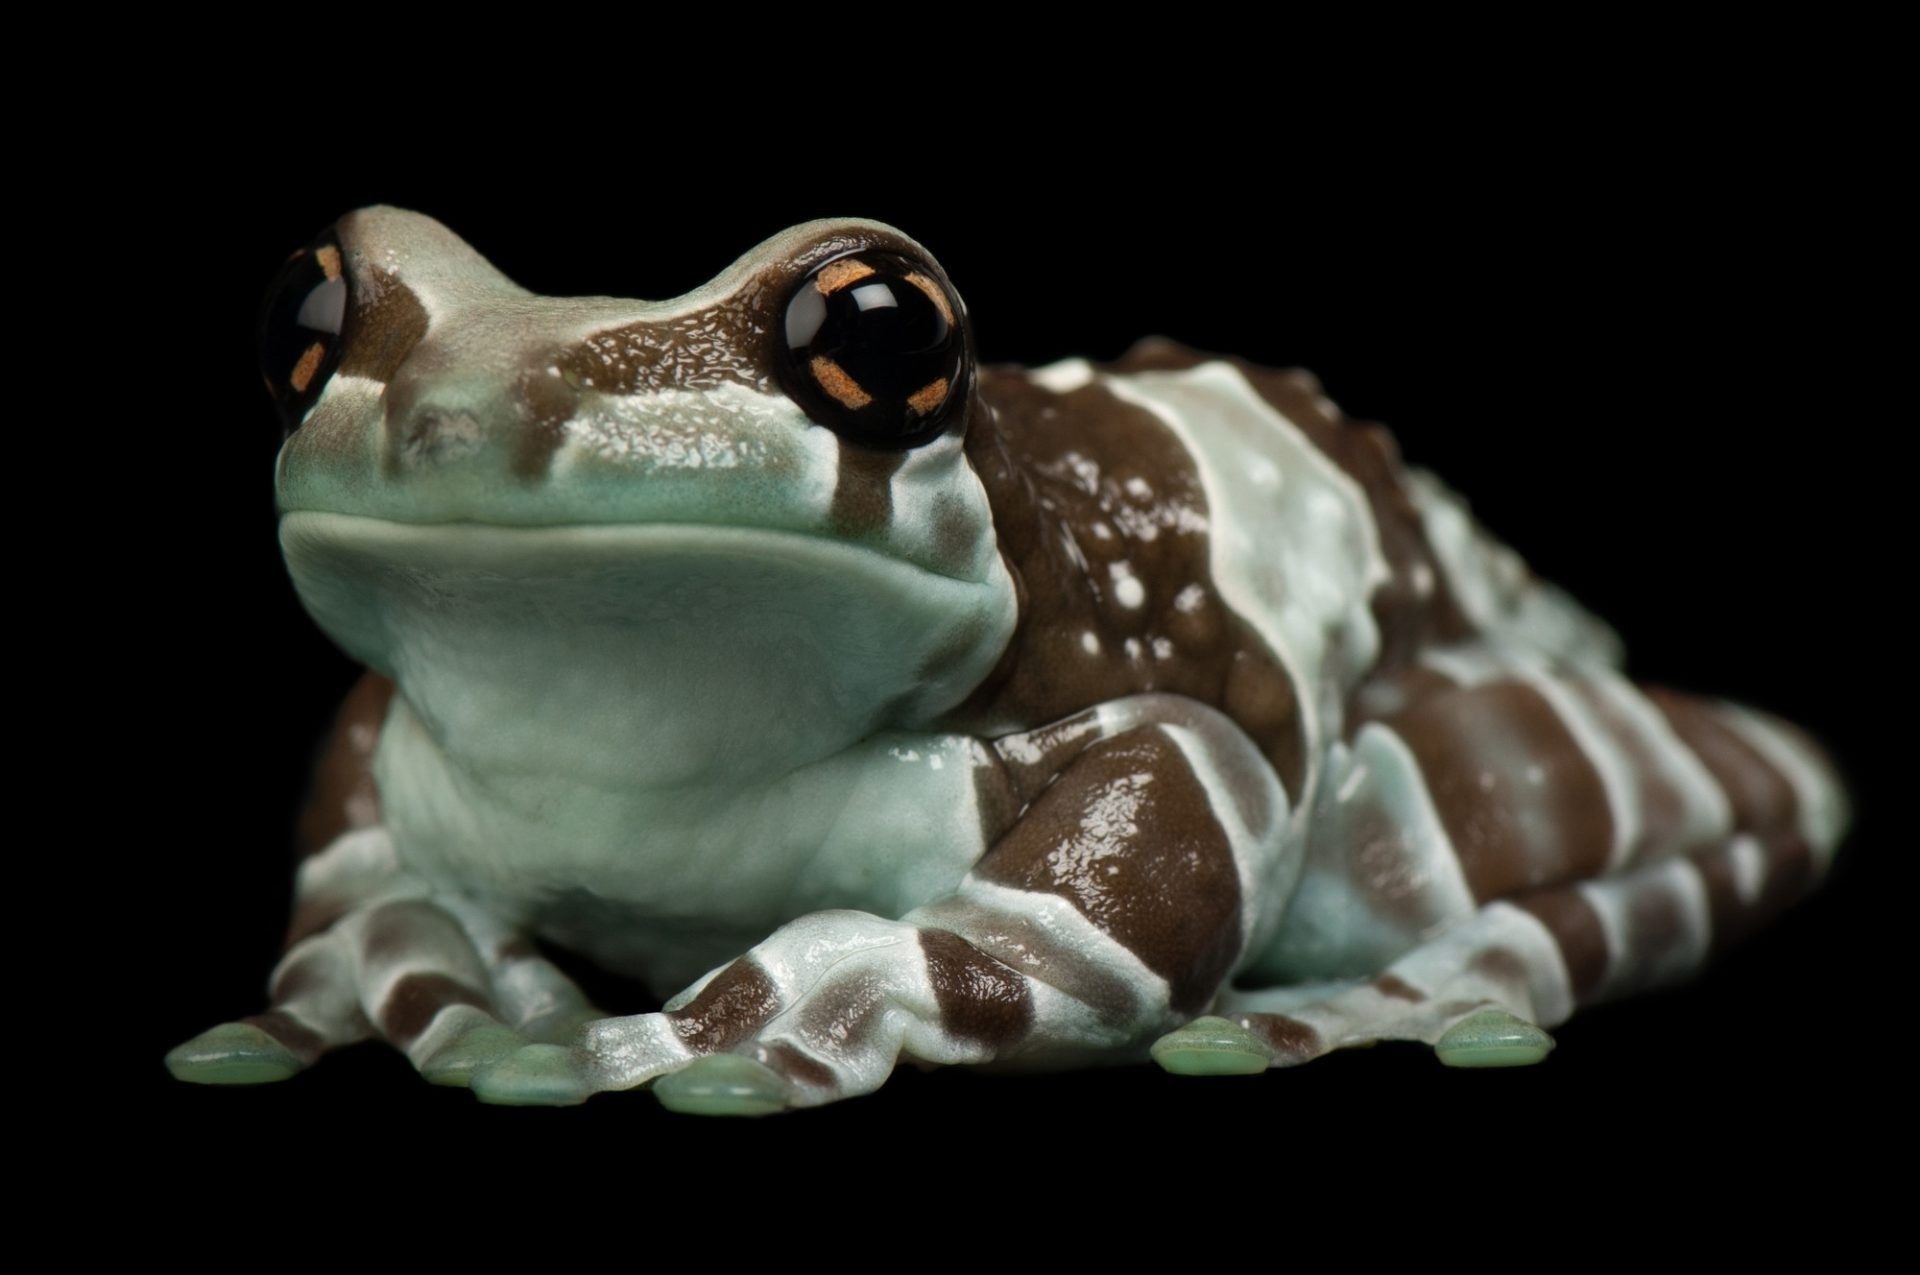 Photo: An Amazon milk tree frog (Trachycephalus resinifictrix) at Reptile Gardens.